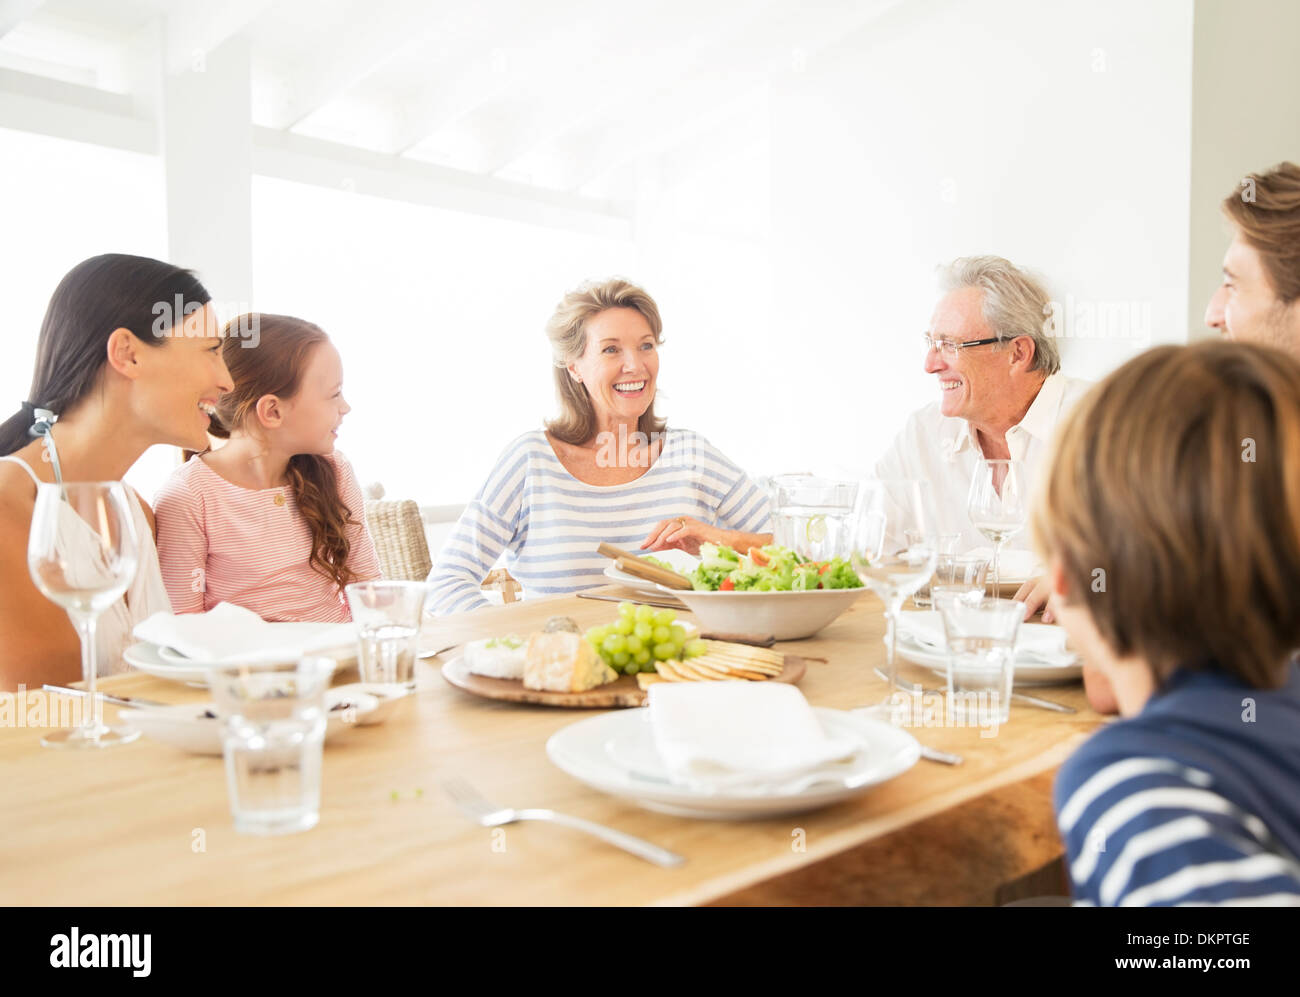 Multi-generation family eating together at table - Stock Image